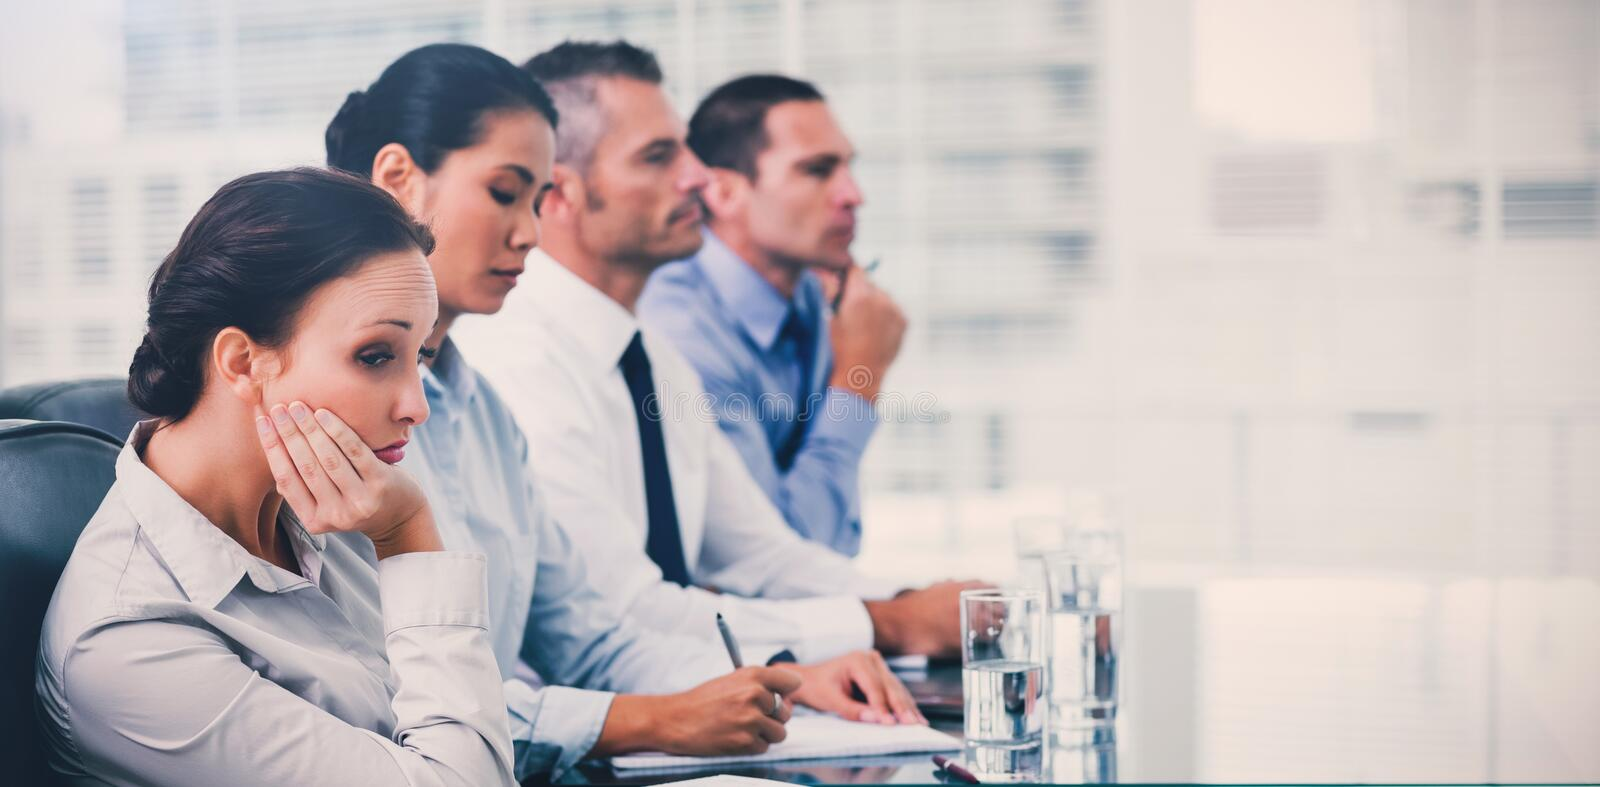 Businesswoman getting bored while attending presentation royalty free stock images